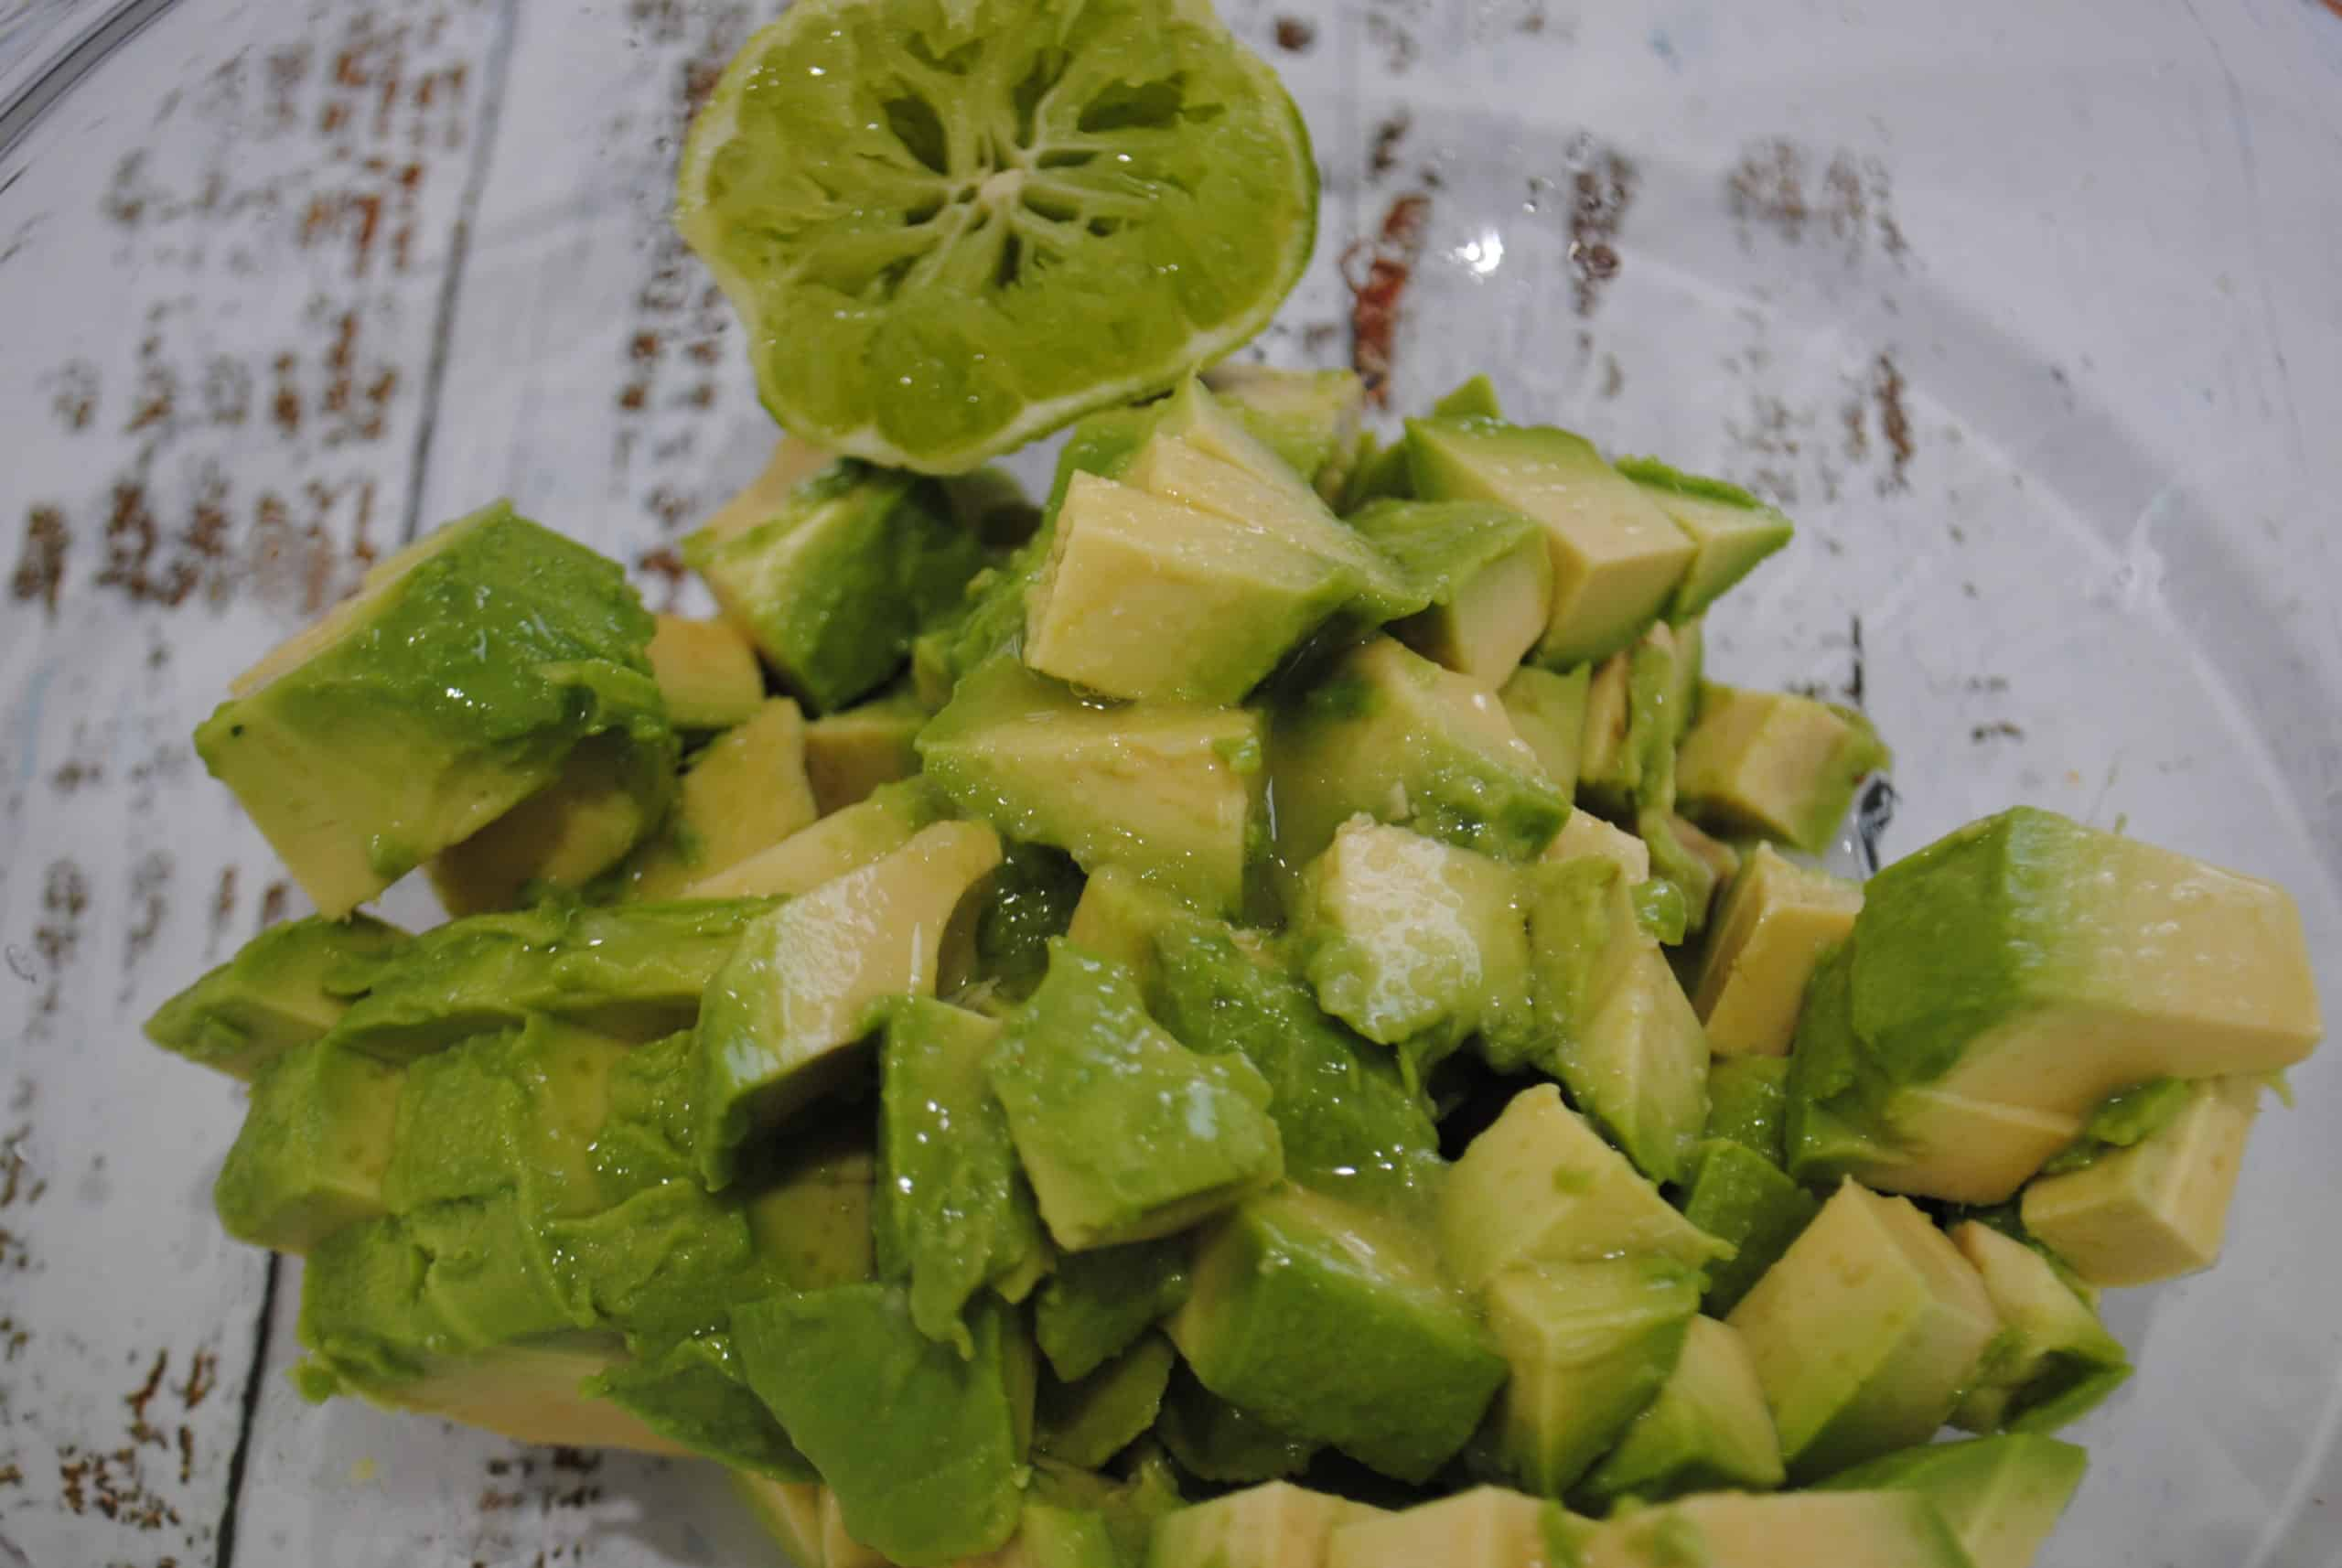 guacamole avocado preparation with cubed avocado and lime juice added with squeezed lime half in bowl